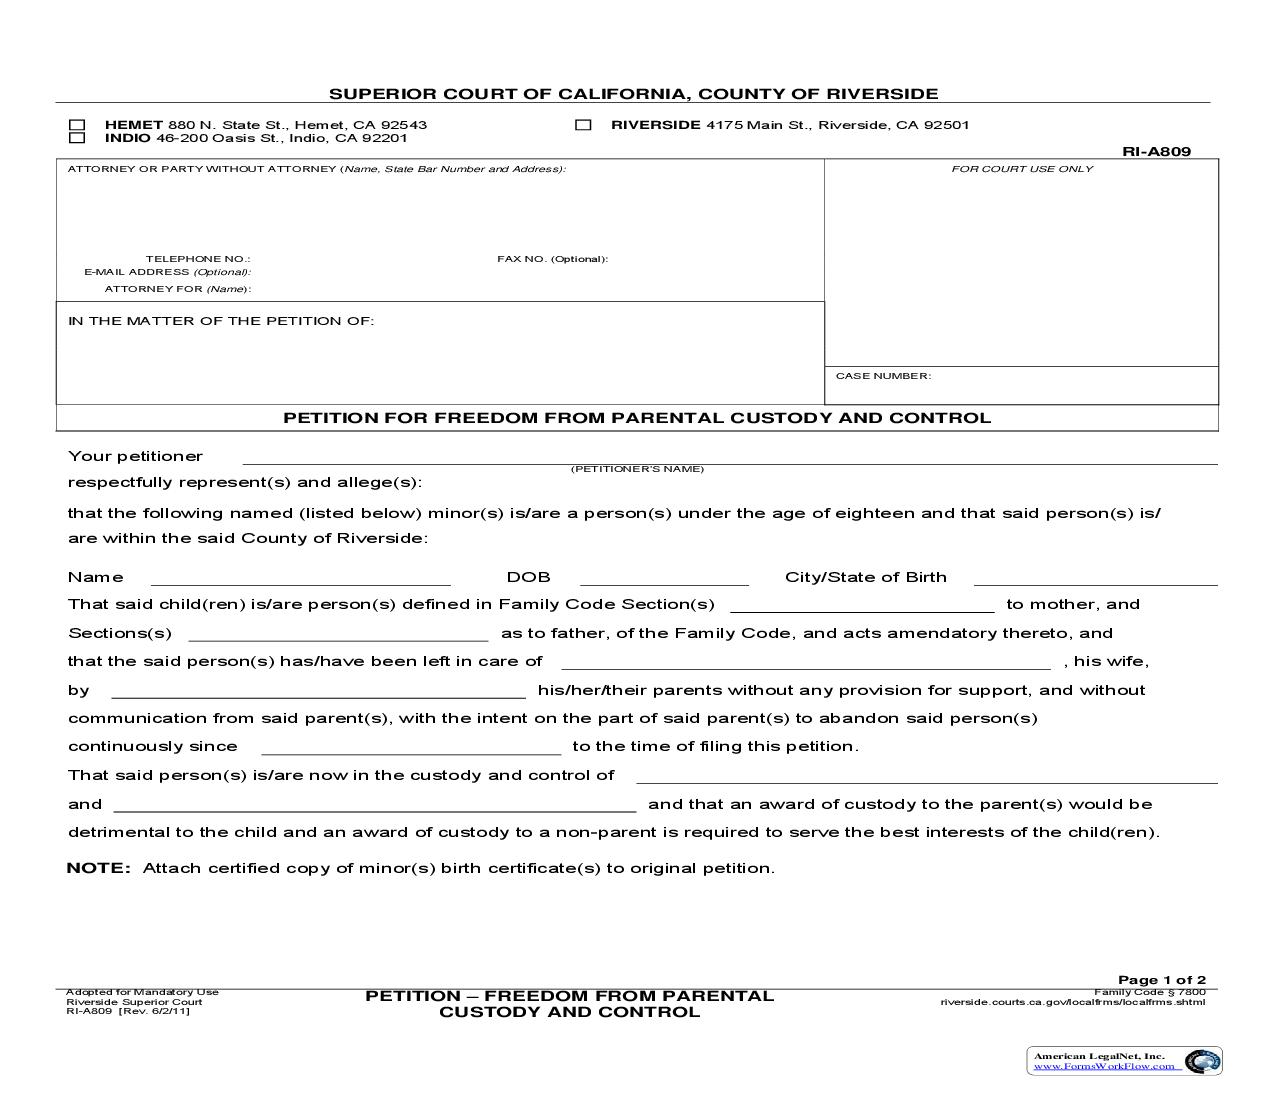 Petition For Freedom From Parental Custody And Control {RI-A809} | Pdf Fpdf Doc Docx | California